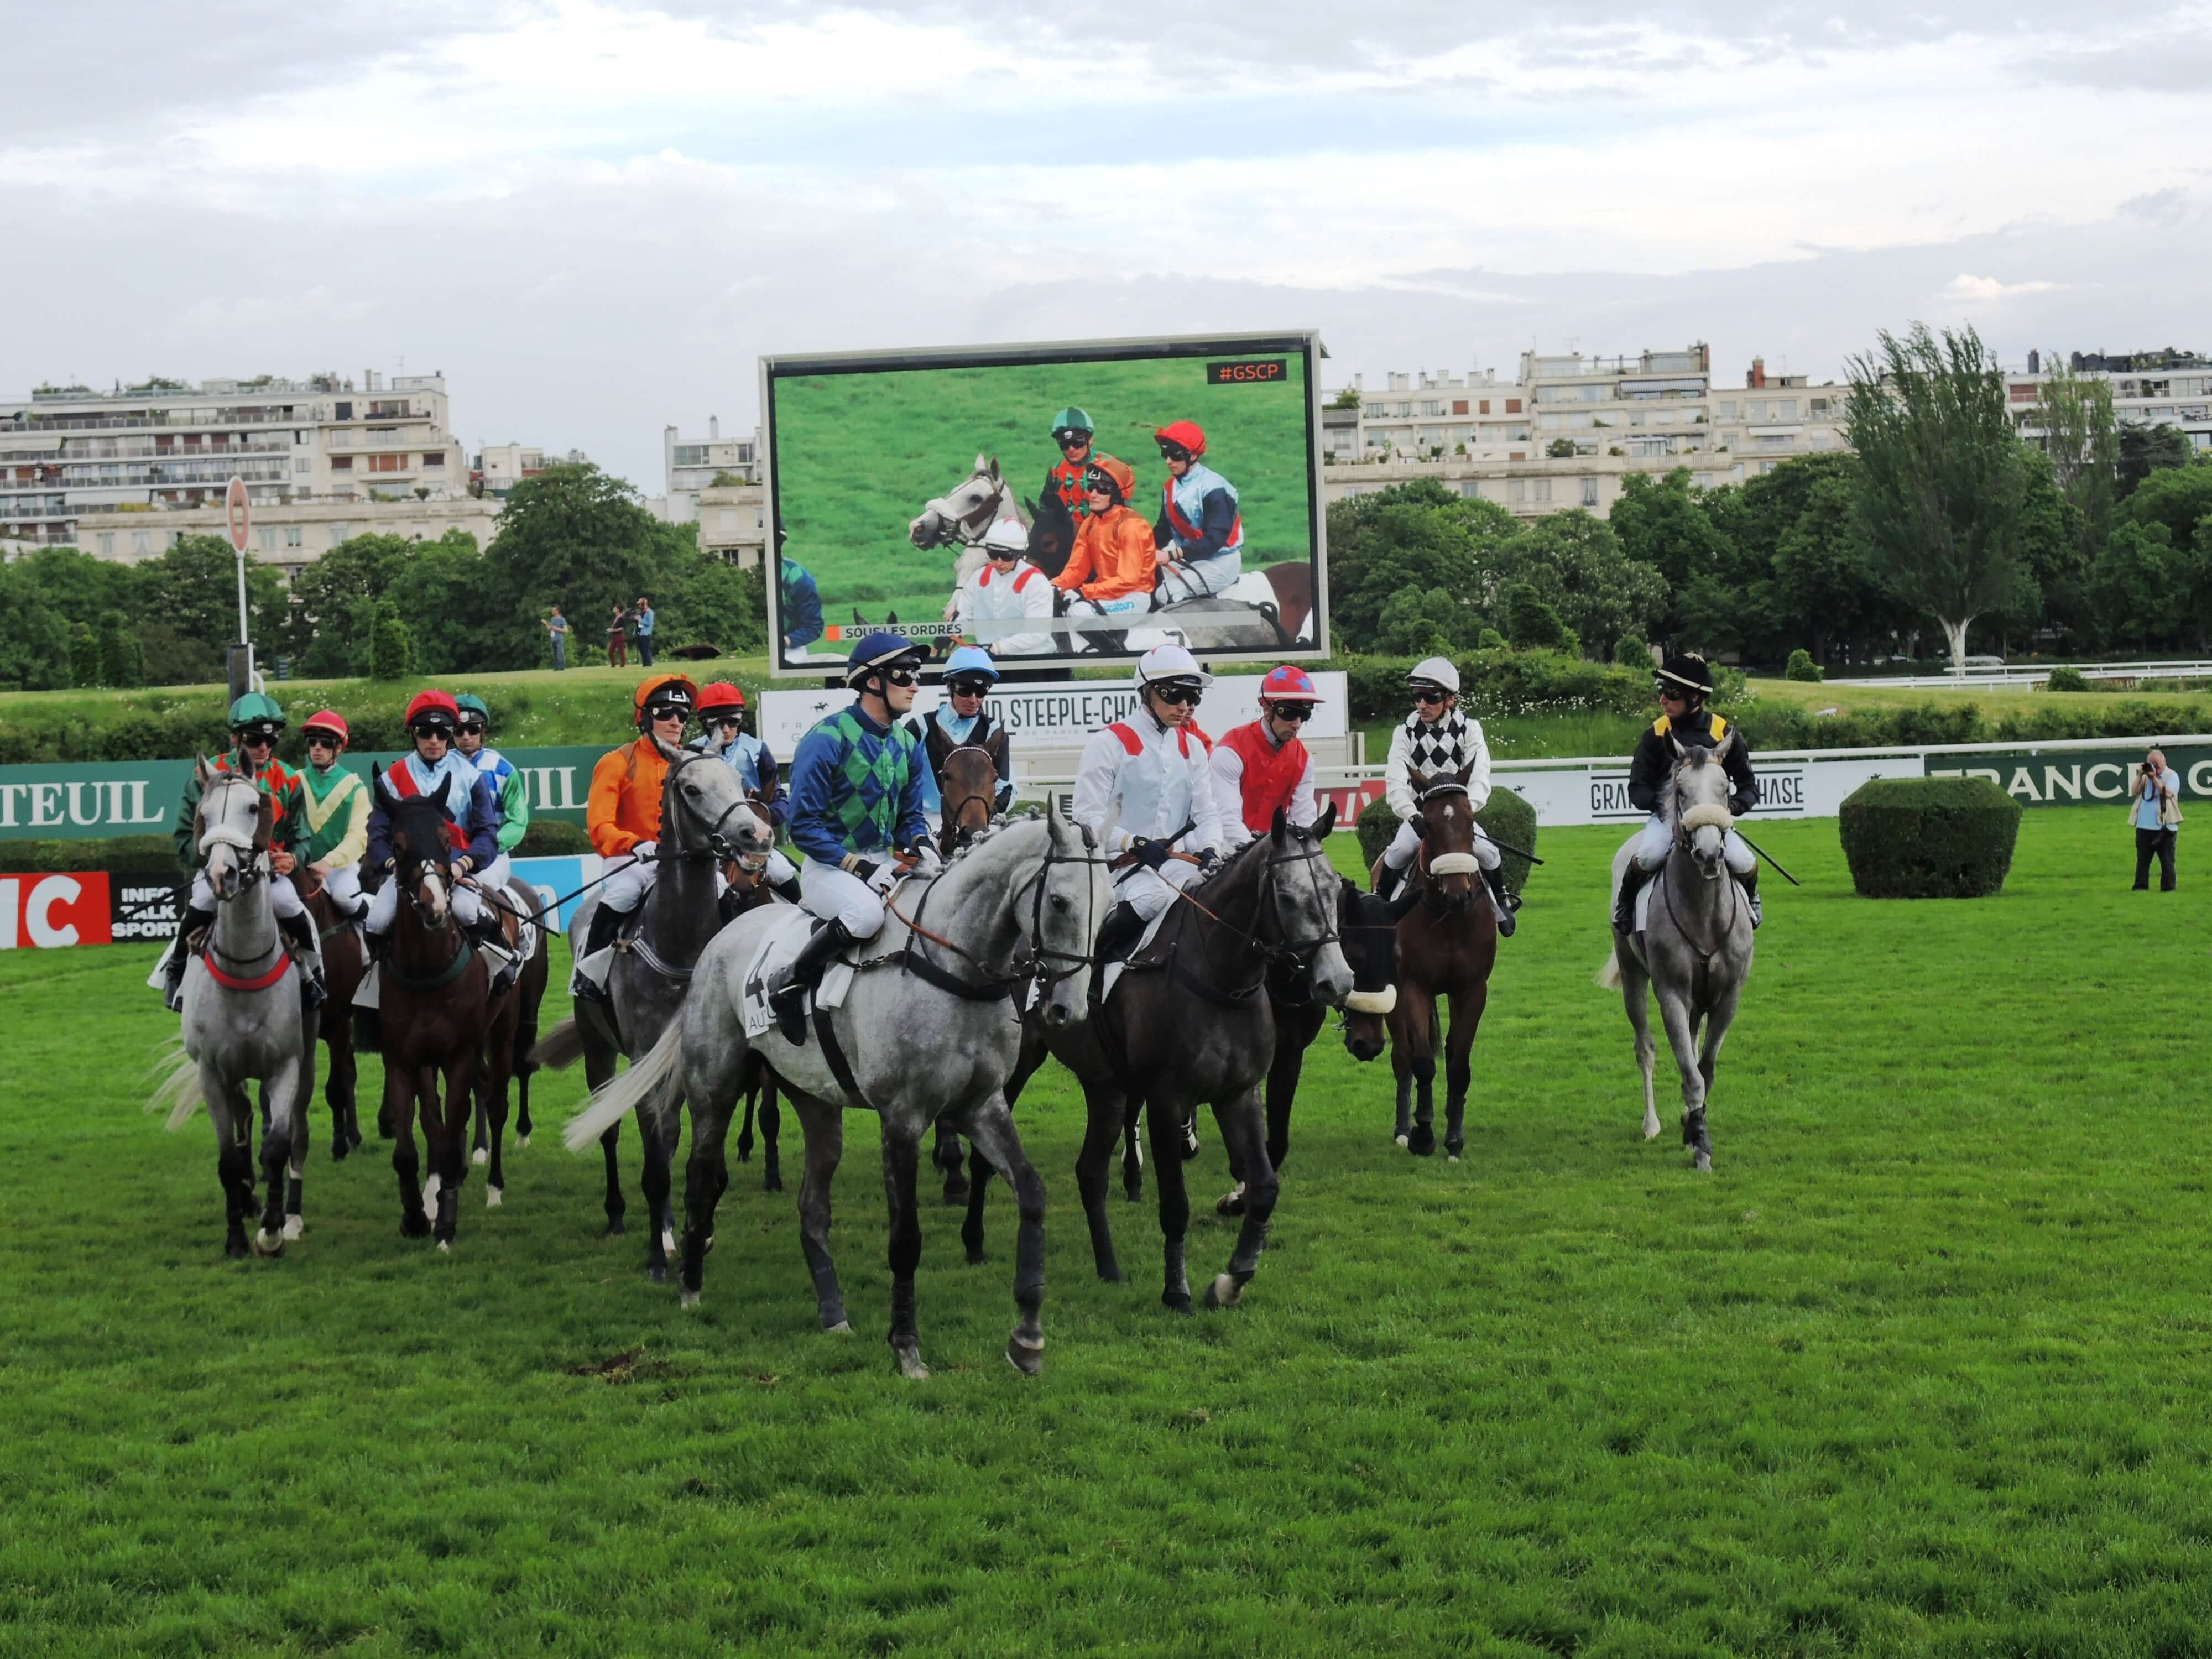 Giant LED screen SUPERVISION LM62b Grand Steeple Chase Hippodrome d'Auteuil